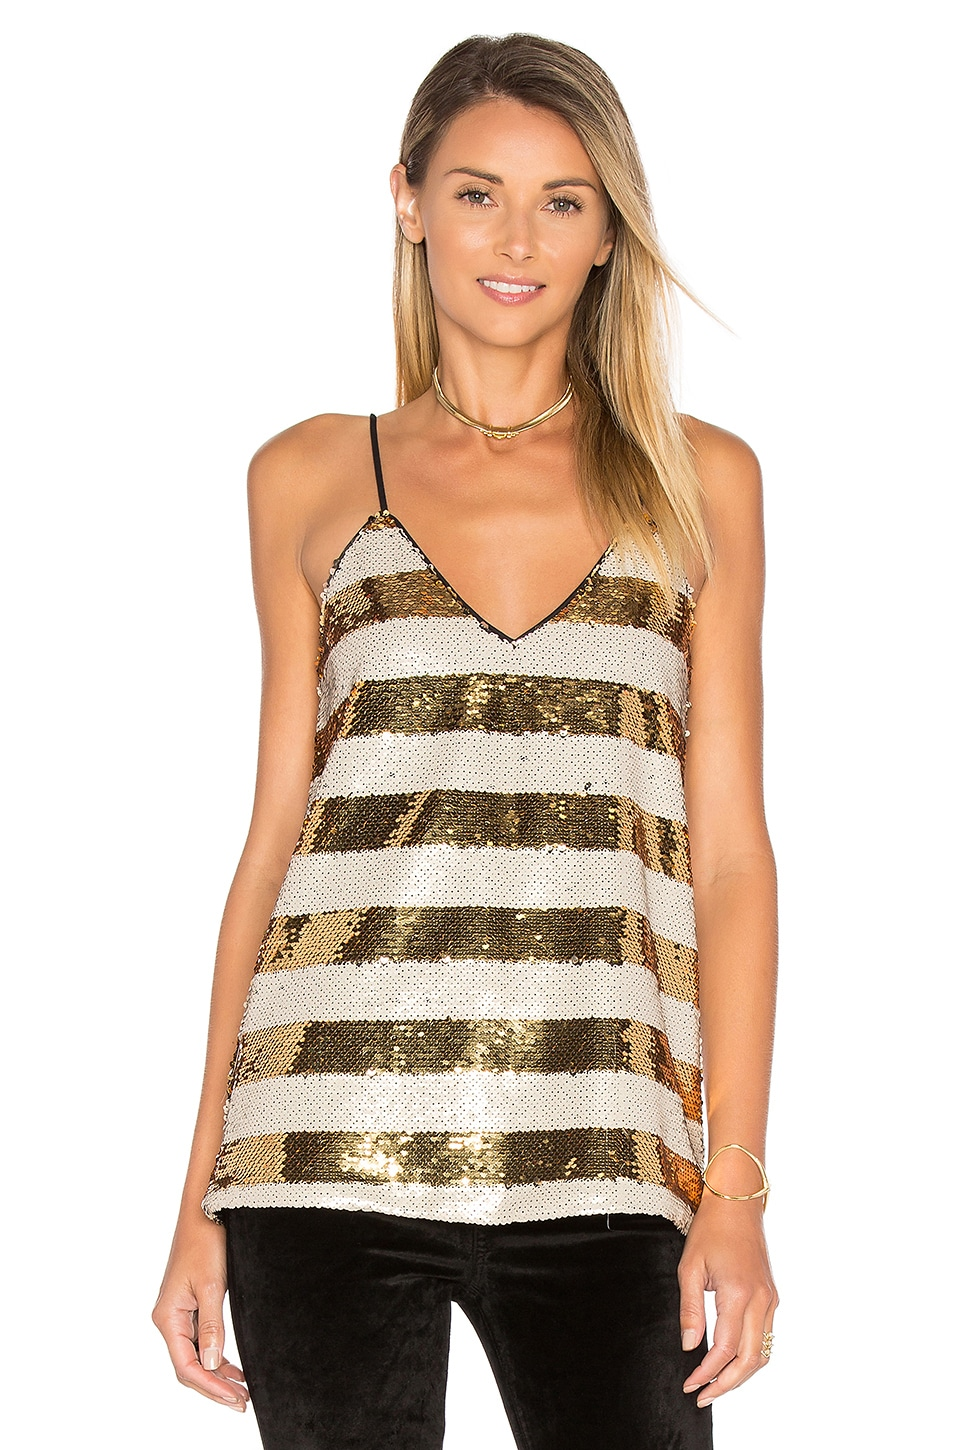 BLAQUE LABEL Striped Sequin Cami in Gold & Creme